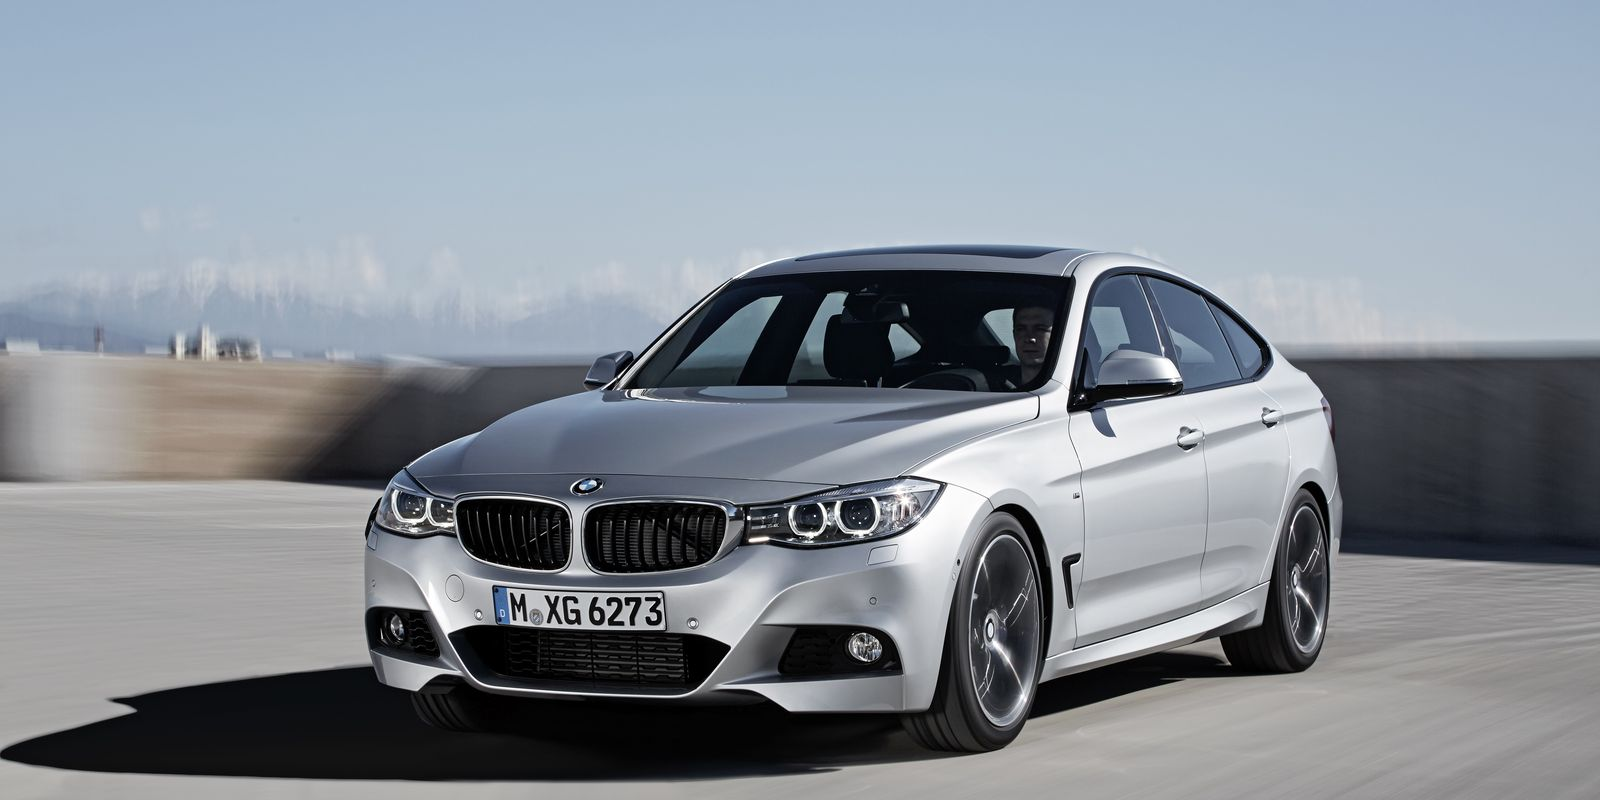 Bmw 5 Series Gran Turismo Review Bmw 6 Series Gt Hatchback Review Carbuyer Autos Post